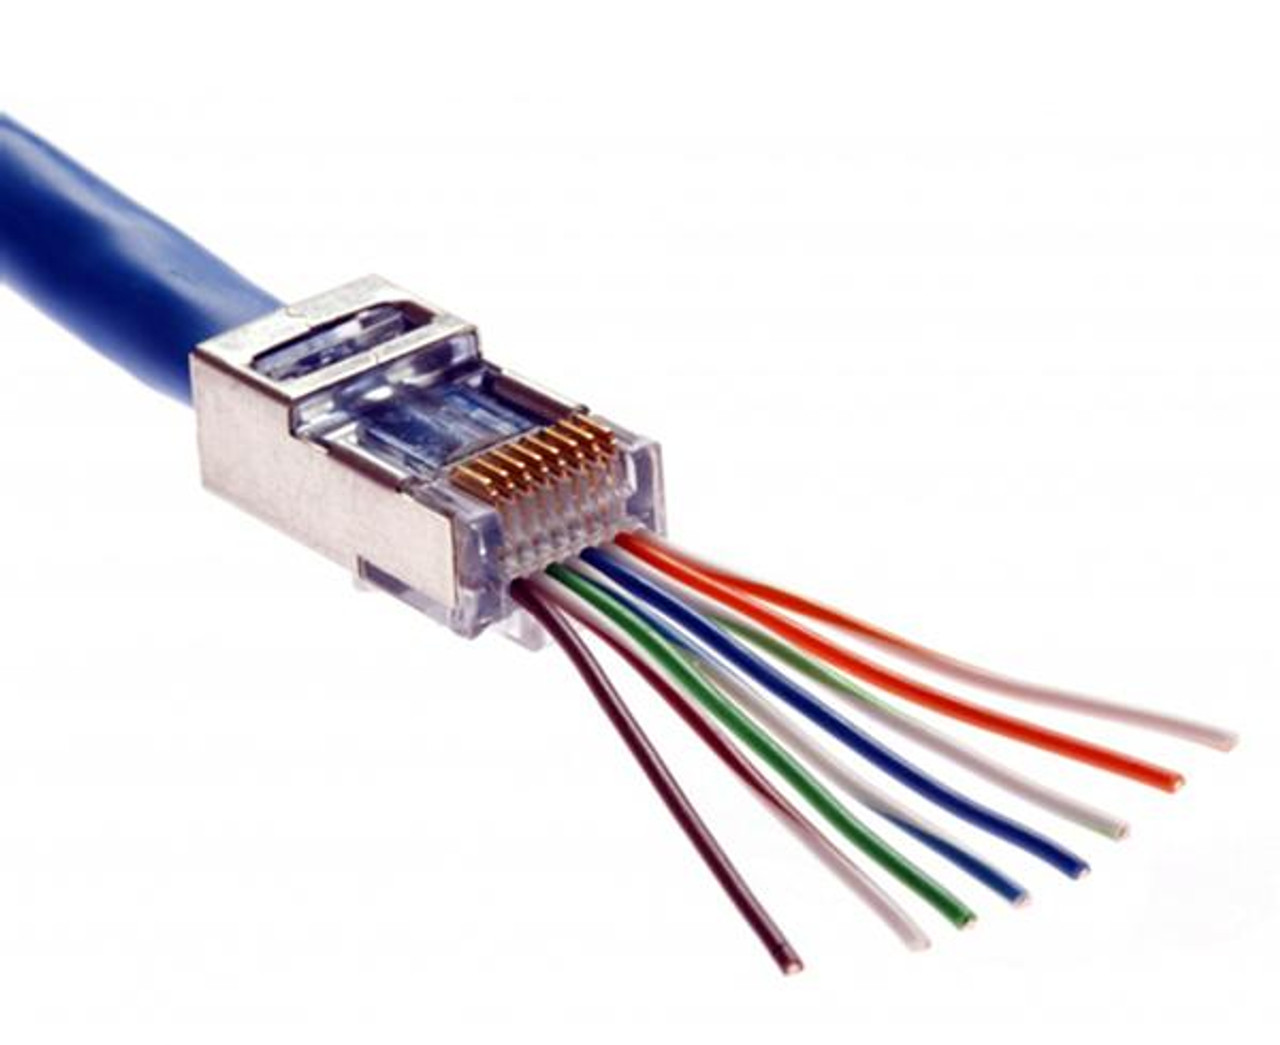 Wiring Rj45 Cat5e Connector - General Wiring Diagrams on